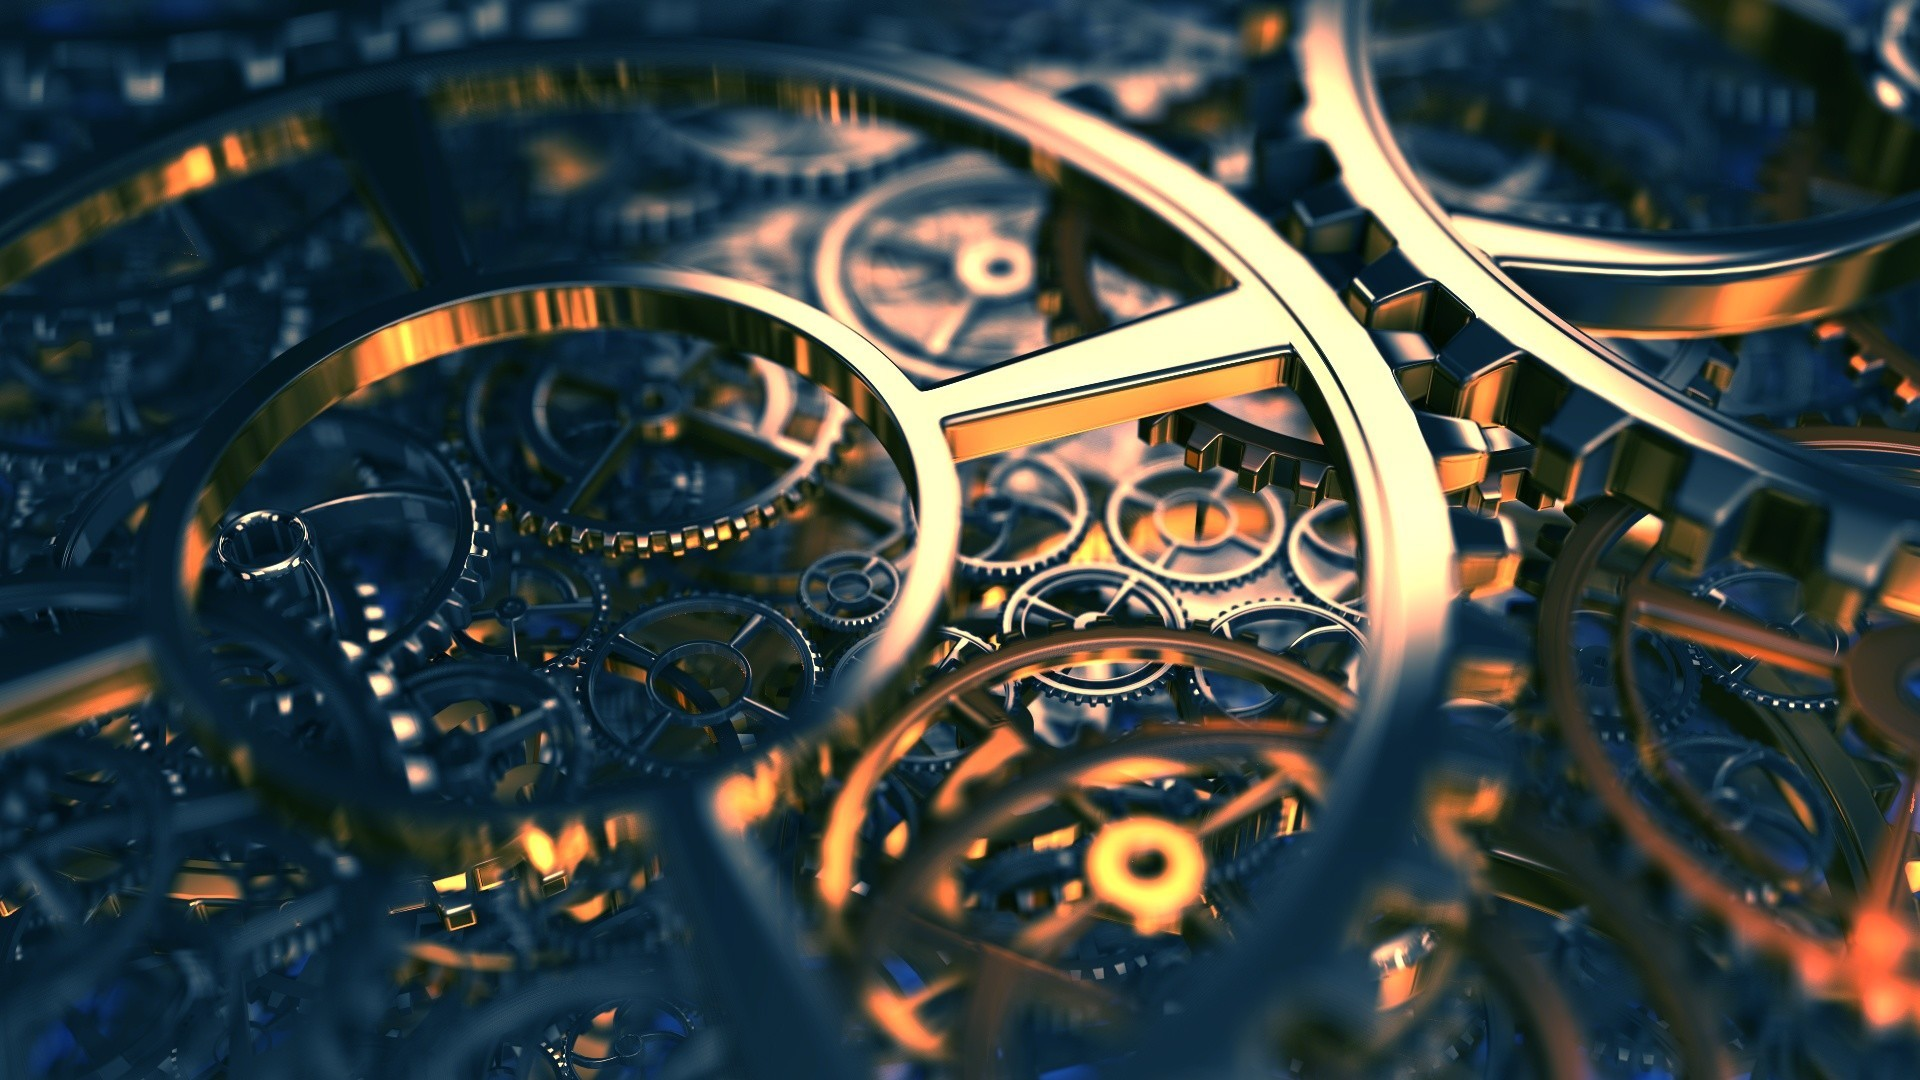 Res: 1920x1080, Art & Creative Wallpapers. Download the following Steampunk Wallpaper HD ...